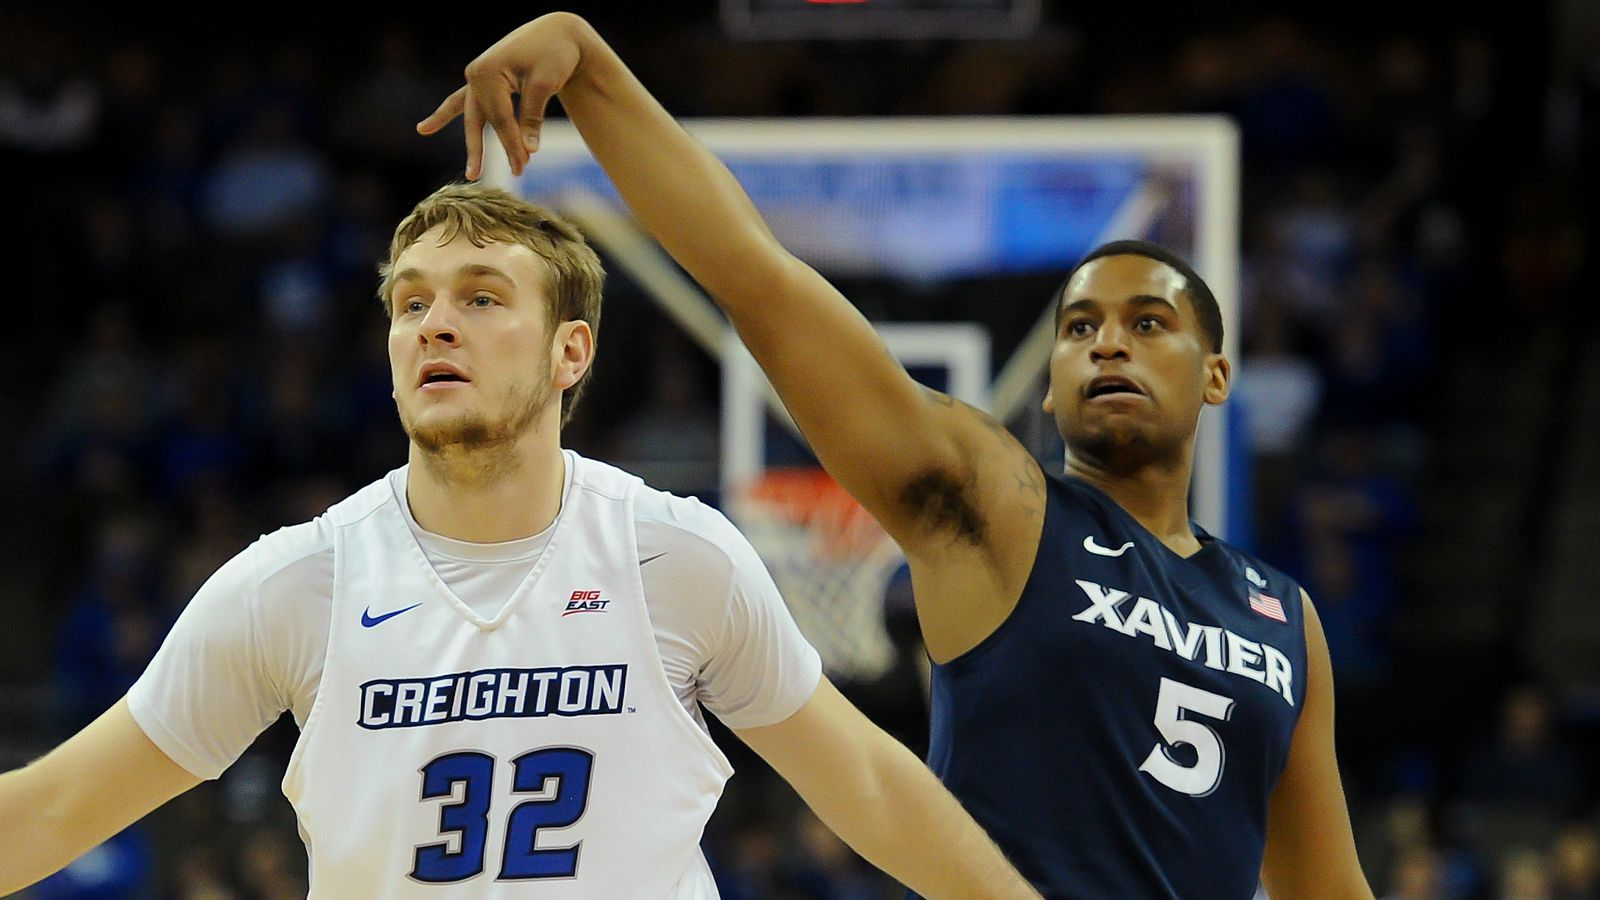 Xavier Gets Humiliated Three Takeaways Banners On The